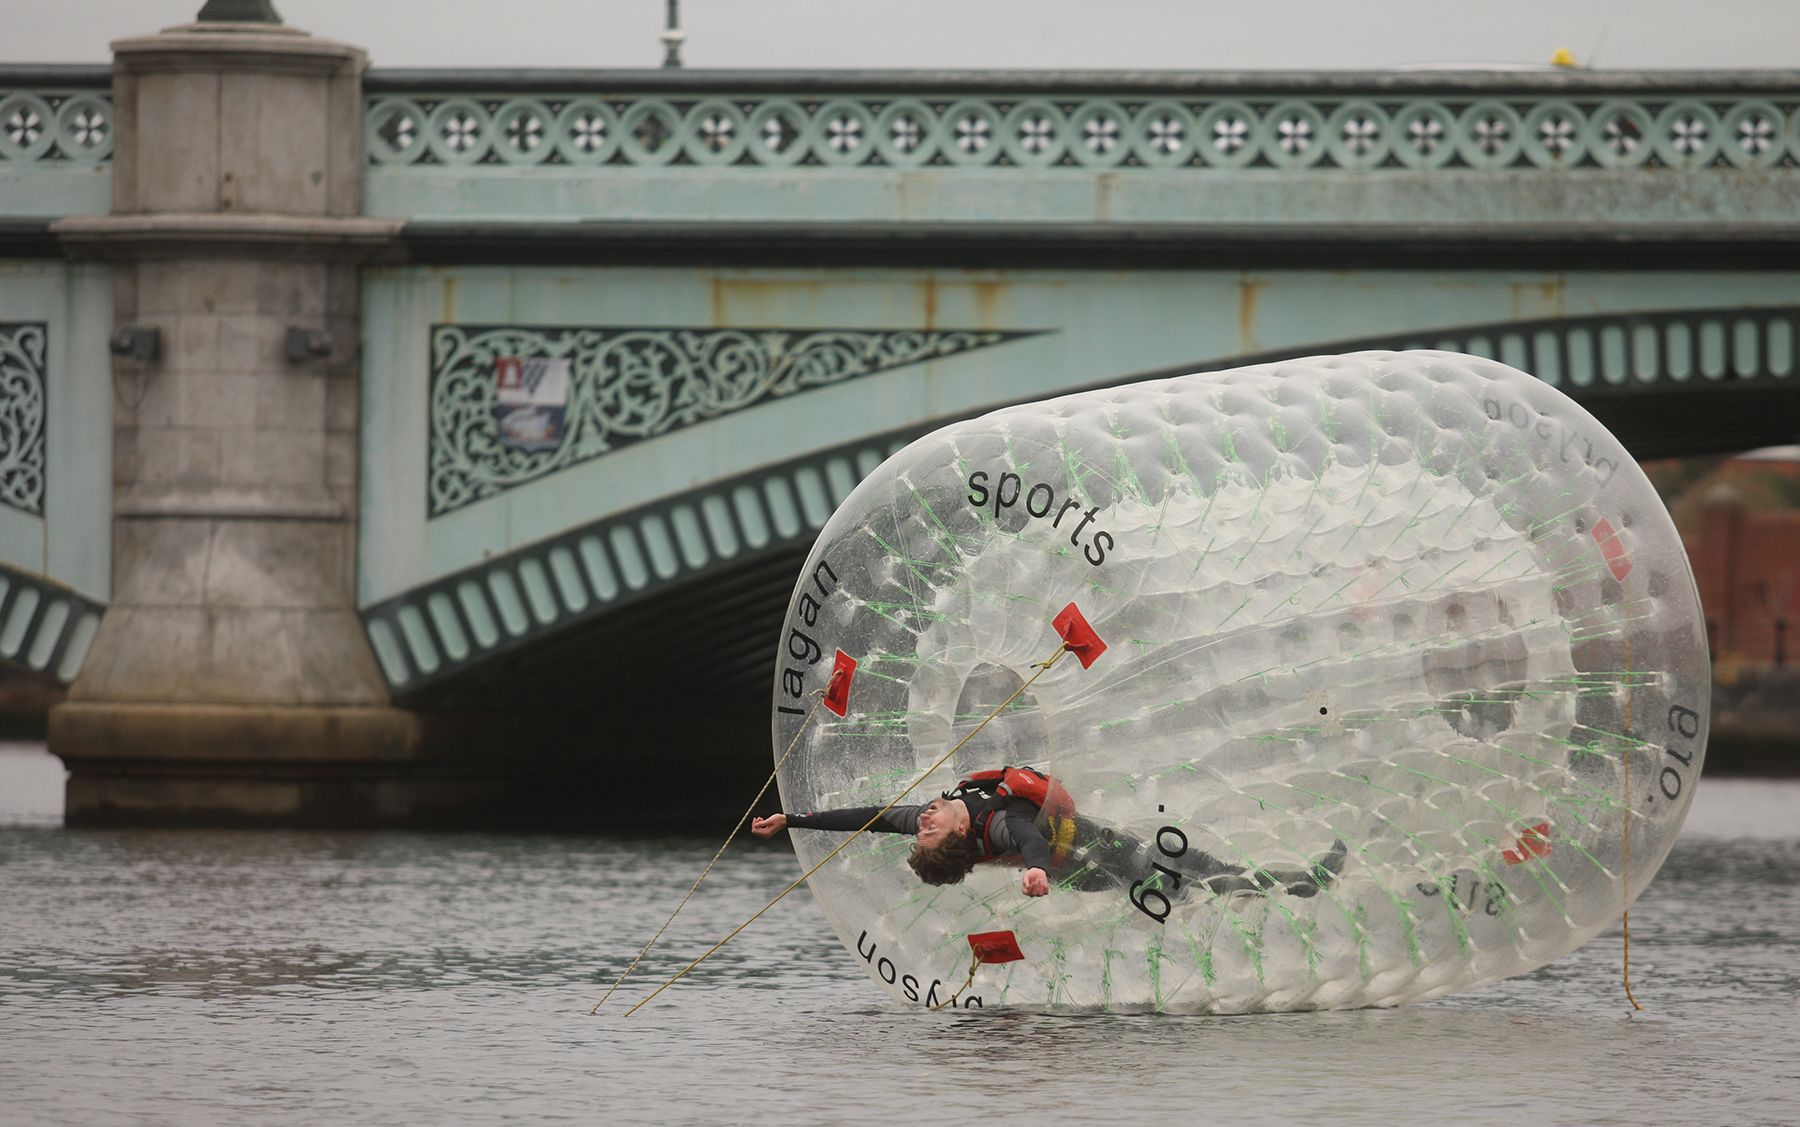 UP THE LAGAN IN A BUBBLE: Actor Shaun Blaney arrives at the Lyric Theatre after travelling up the river Lagan in a bubble